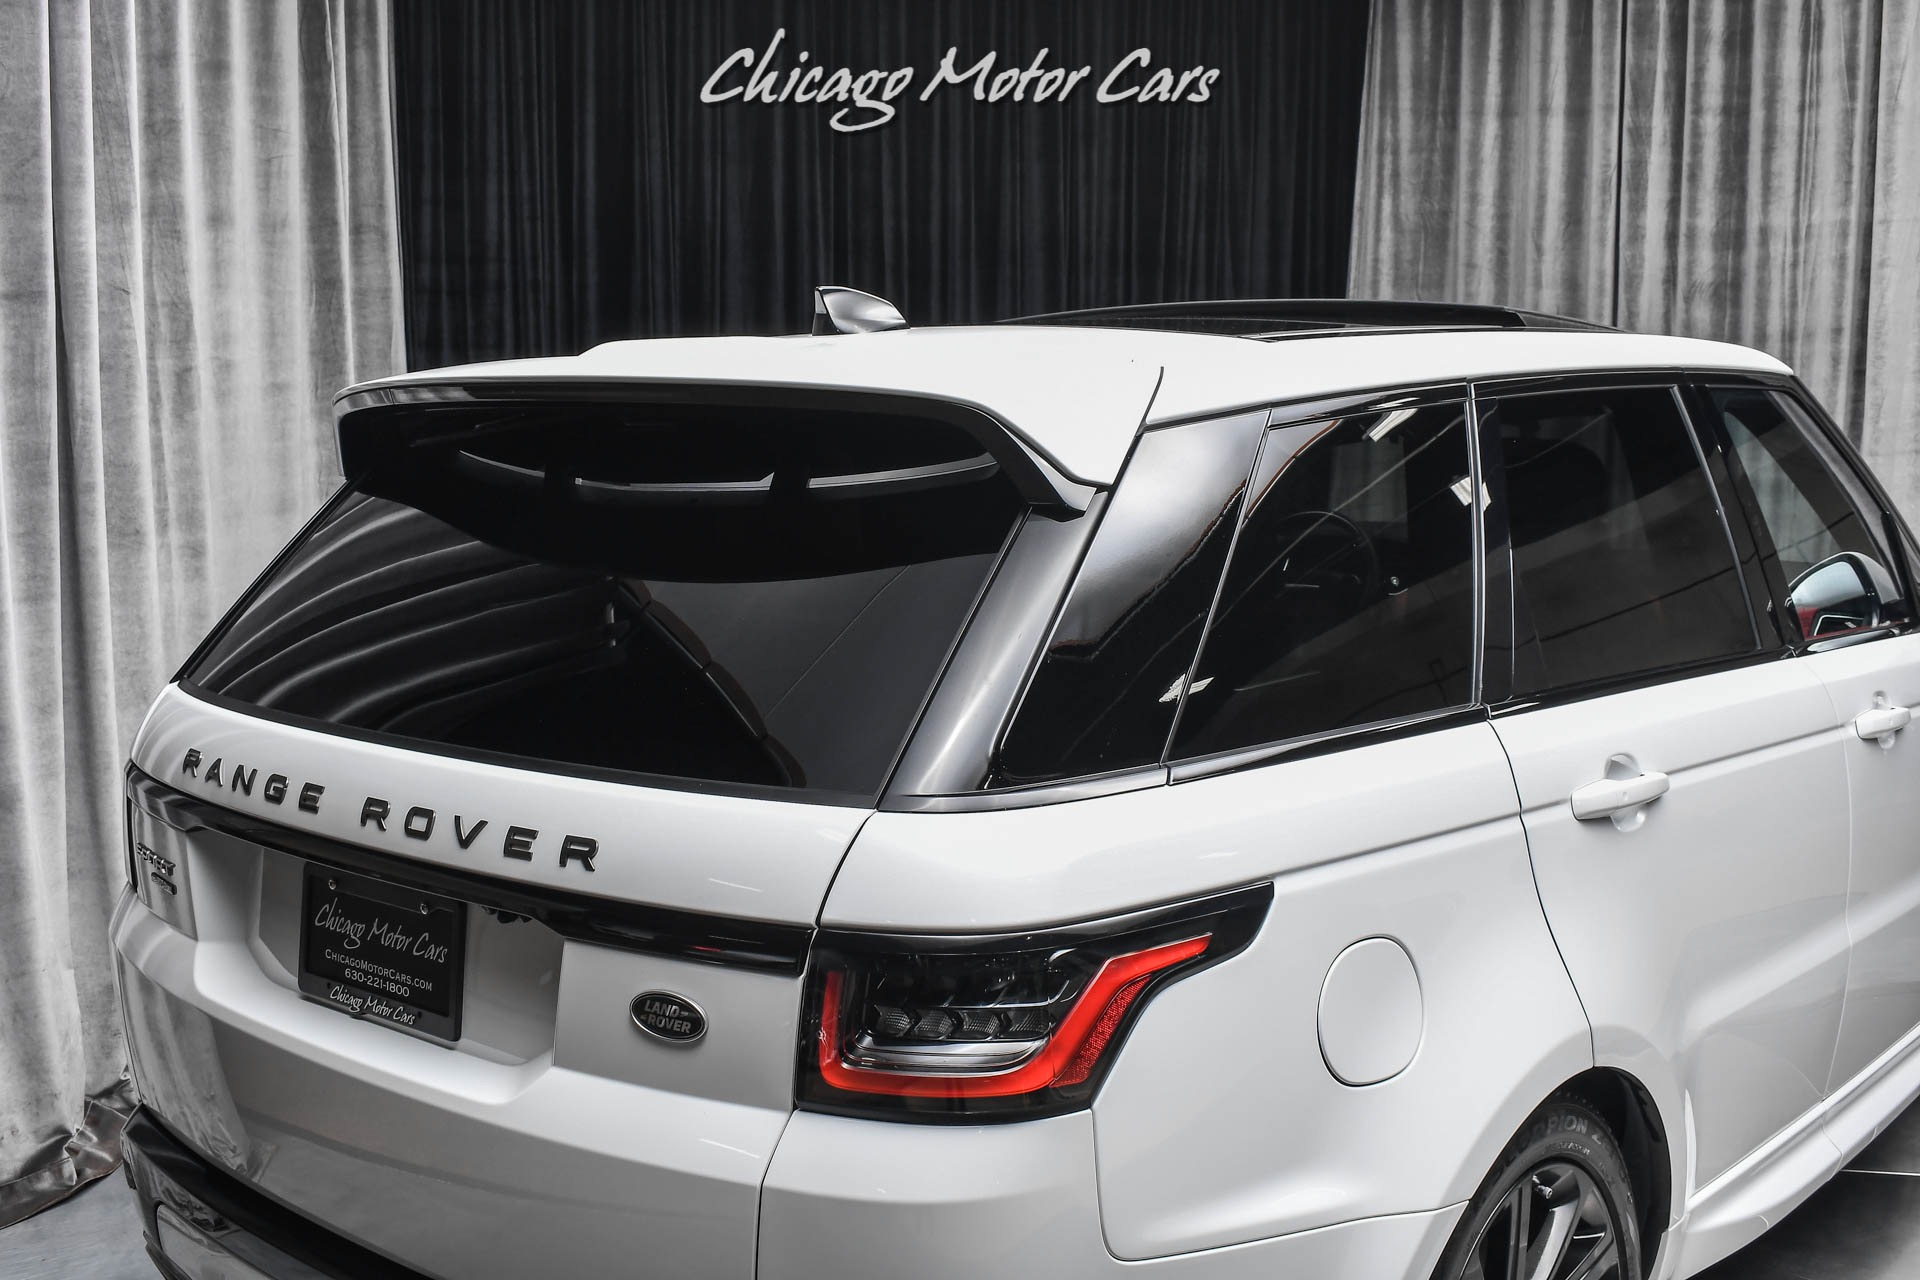 Used-2020-Land-Rover-Range-Rover-Sport-P525-HSE-Dynamic-Pearl-White-LOADED-Red-Interior-HOT